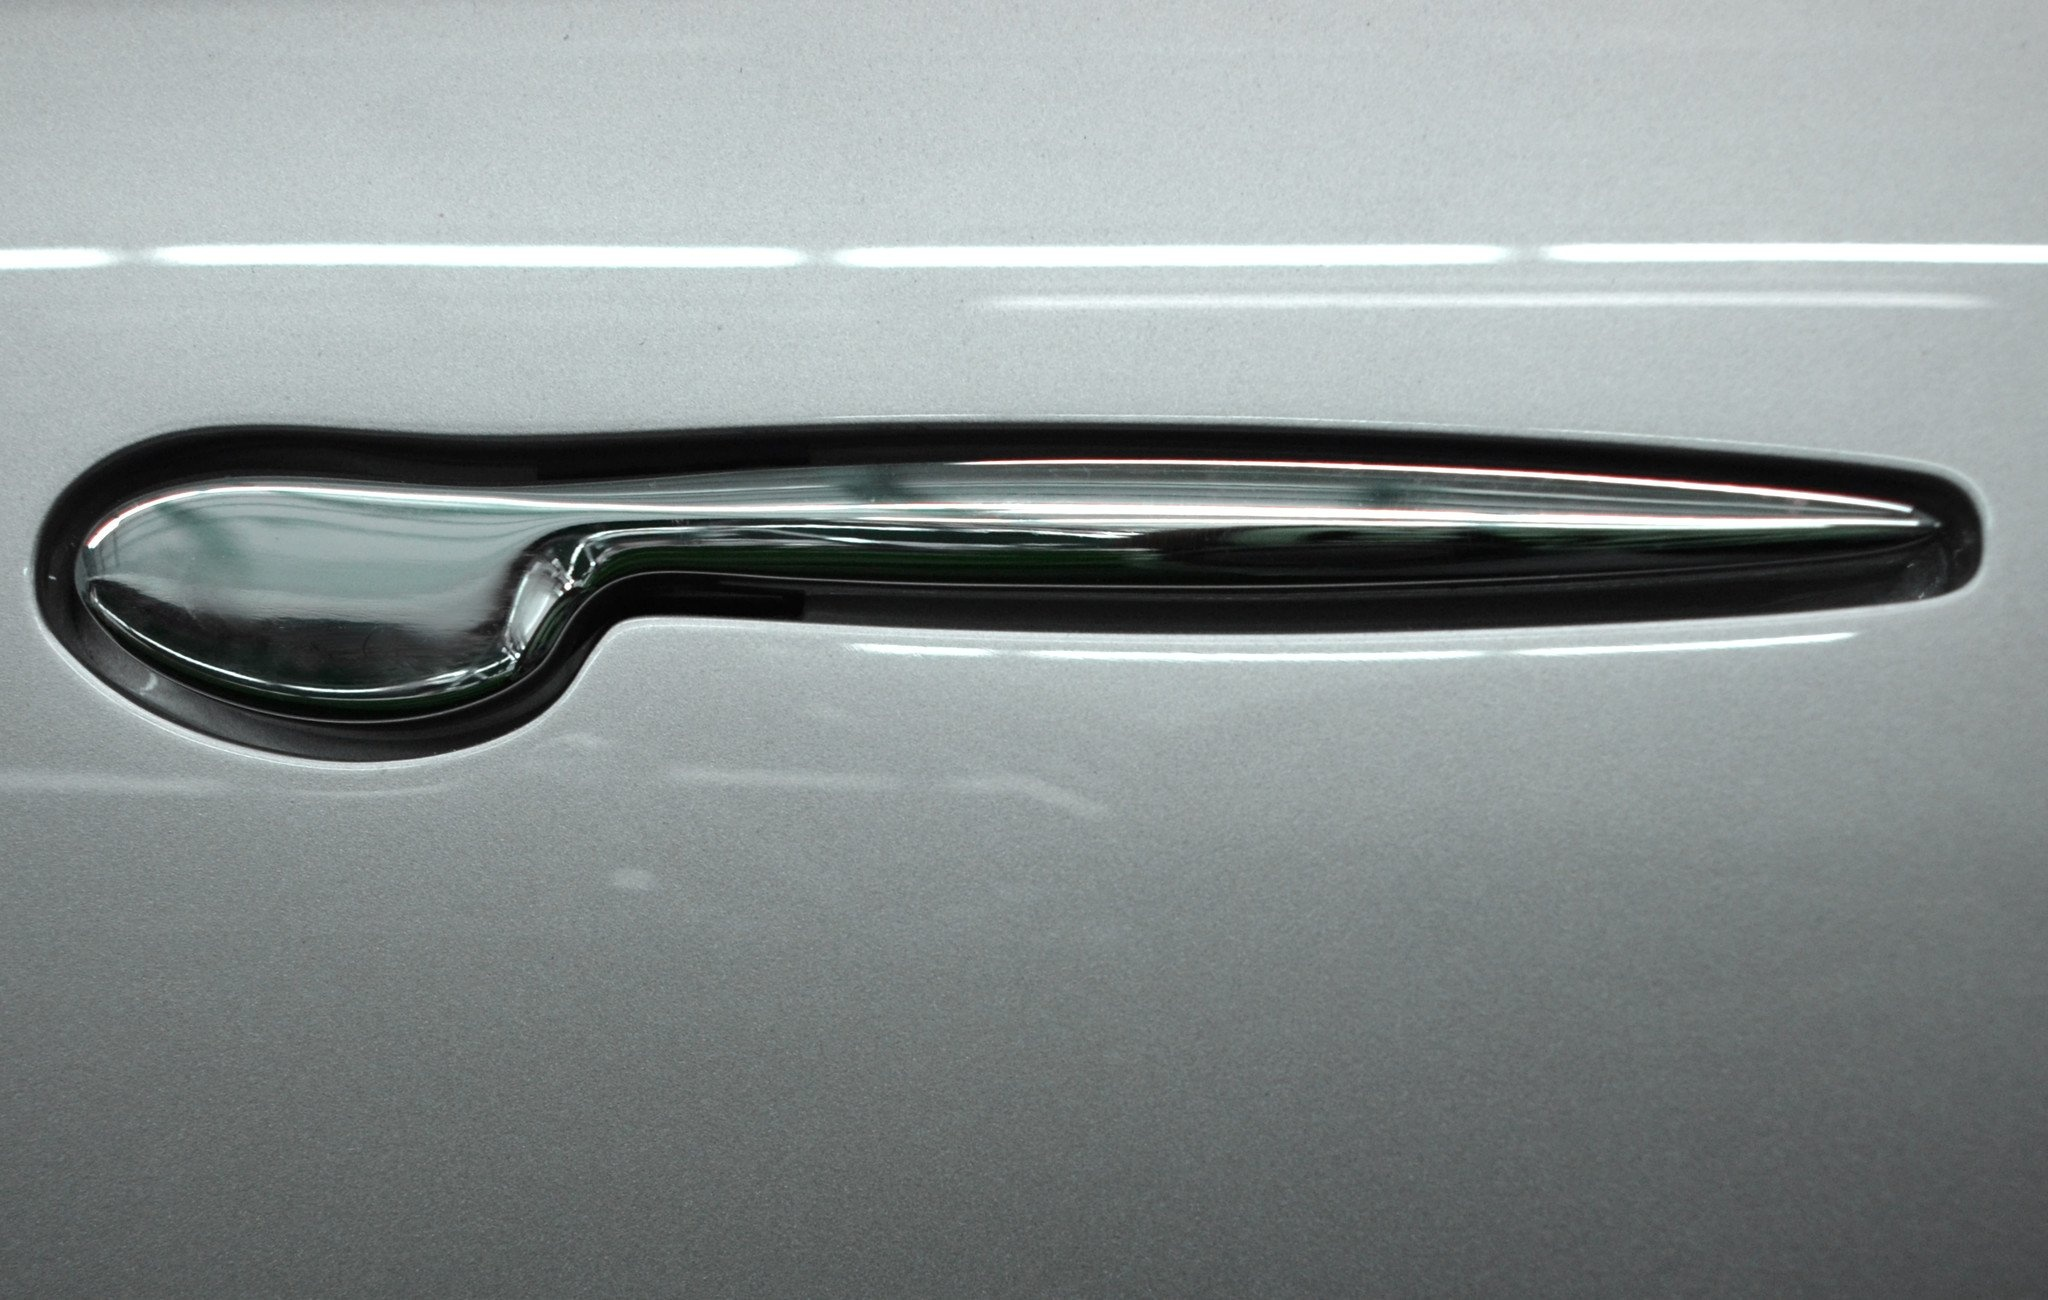 Just As Aero The Tesla Door Handles And About Eighty Four Zillion Times More Reliable Because They Re Mechanical